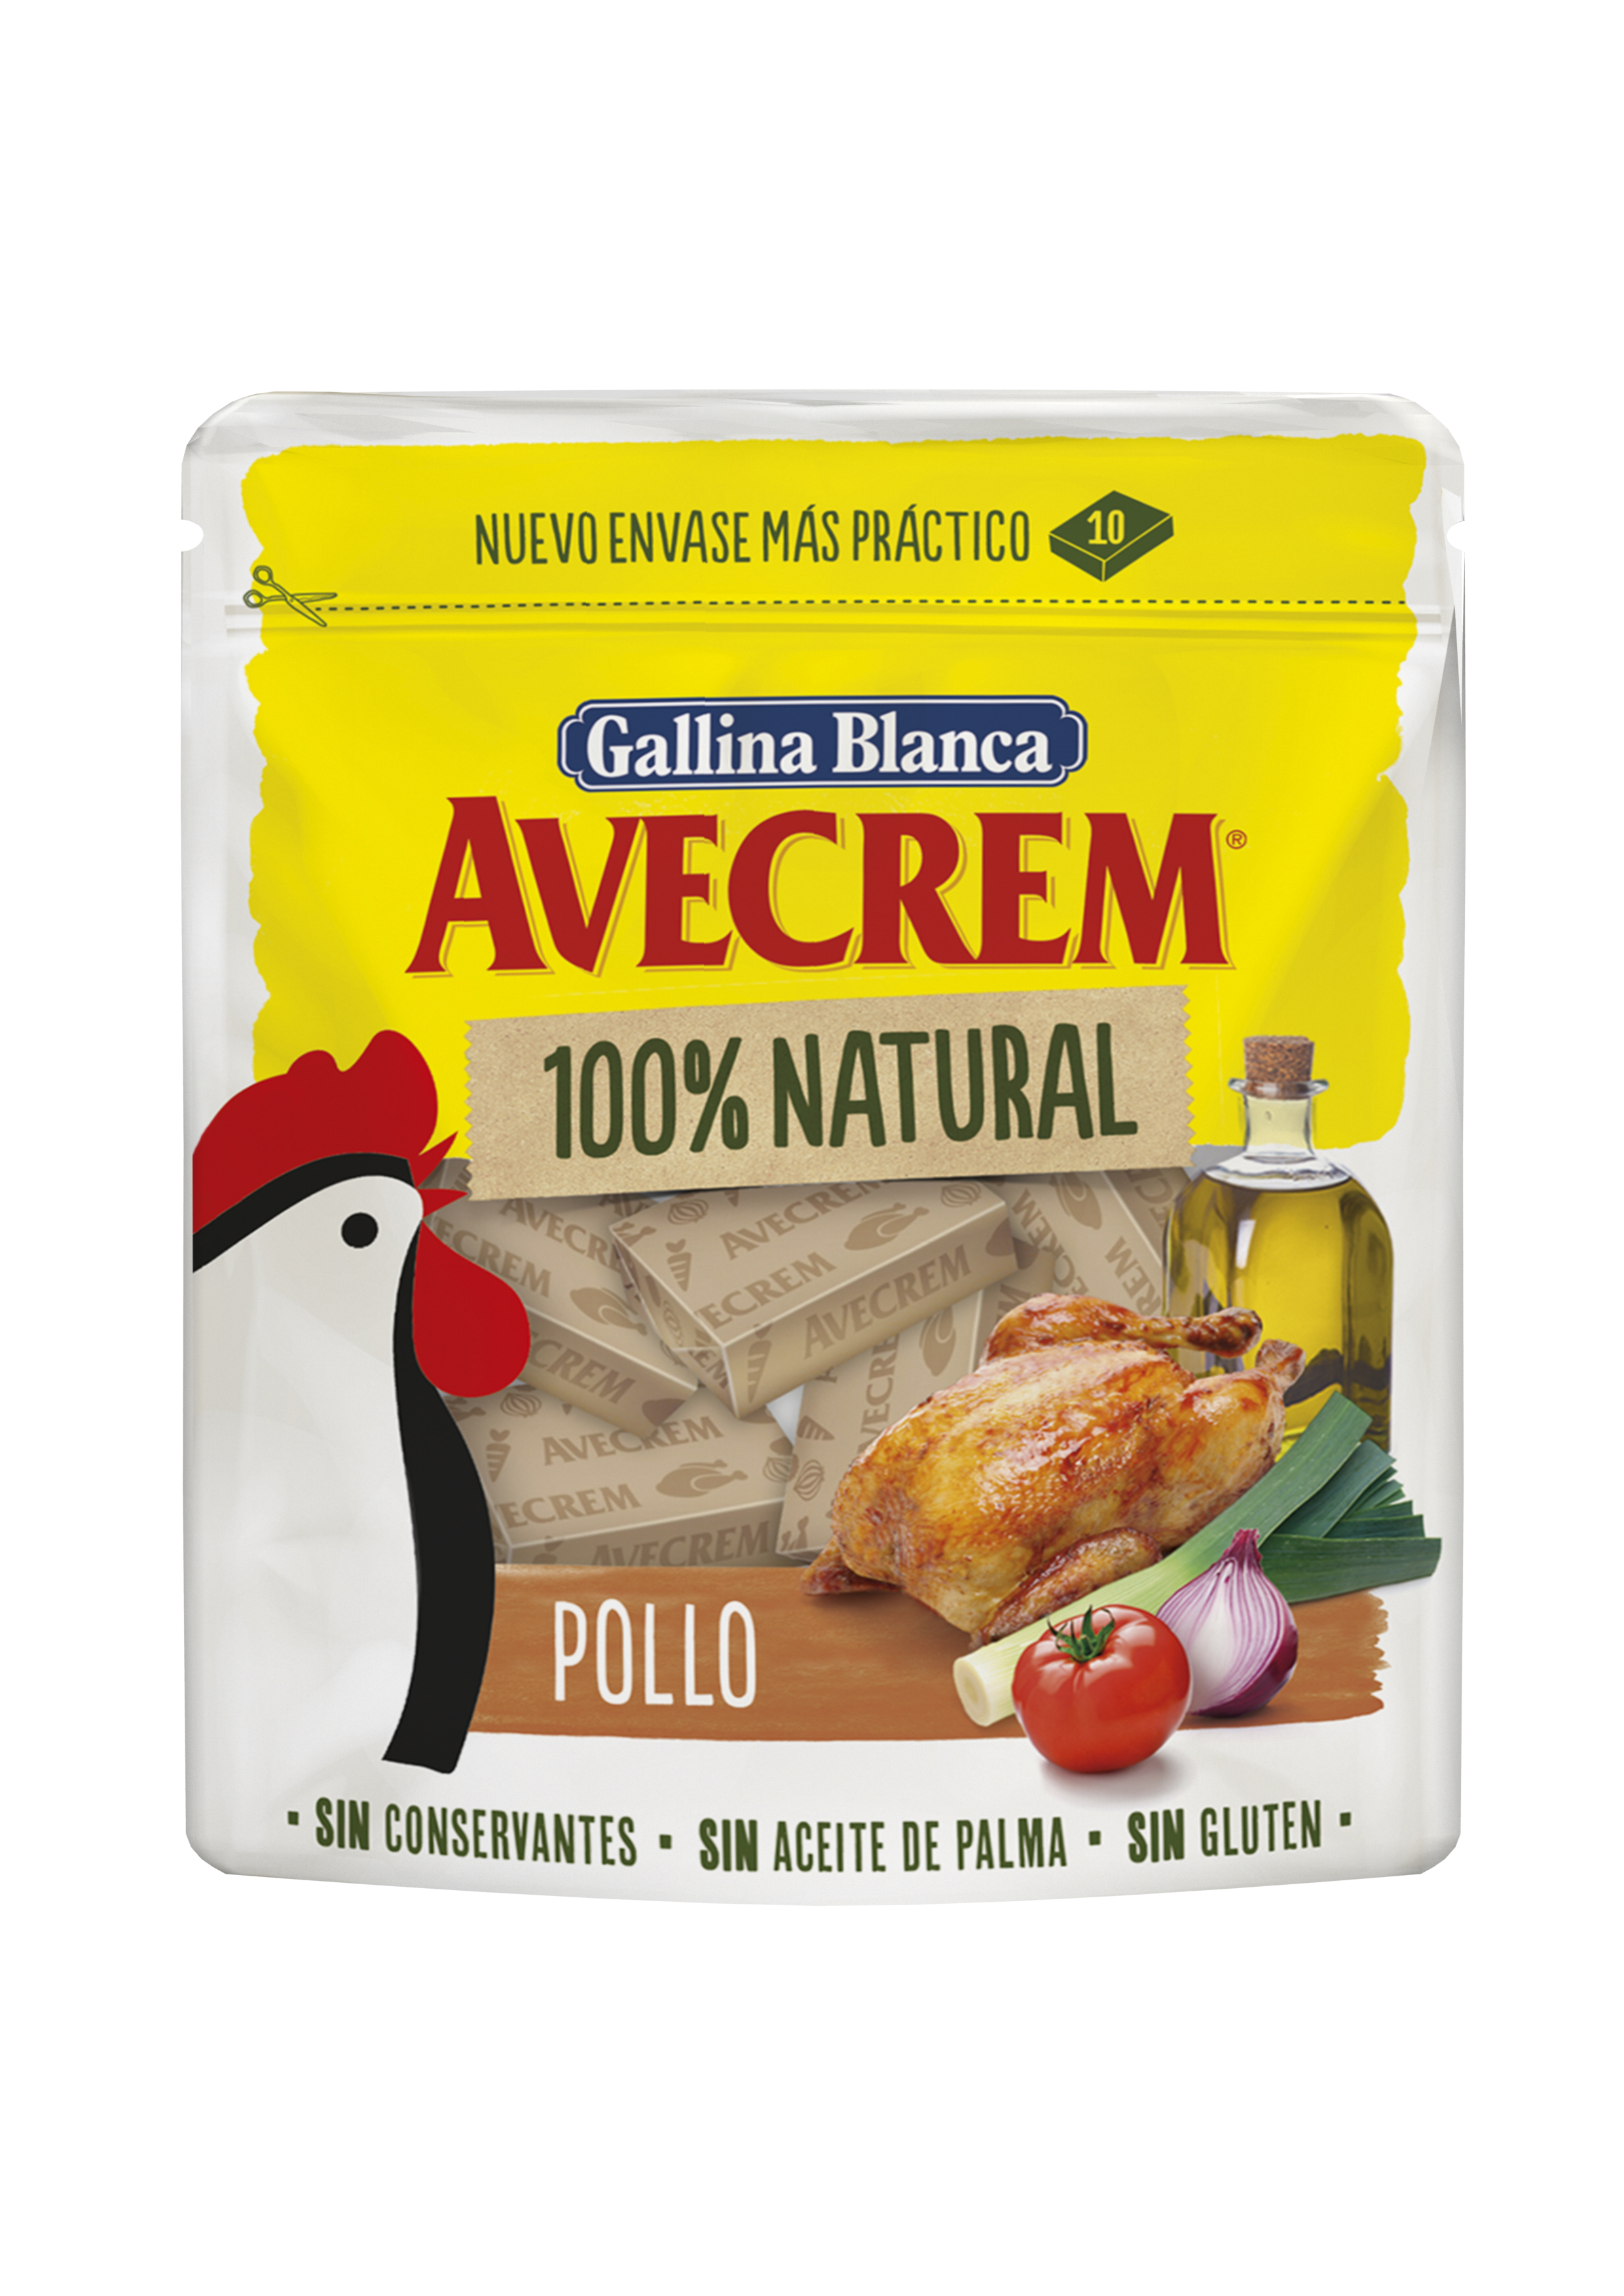 Avecrem 100% Natural Pollo